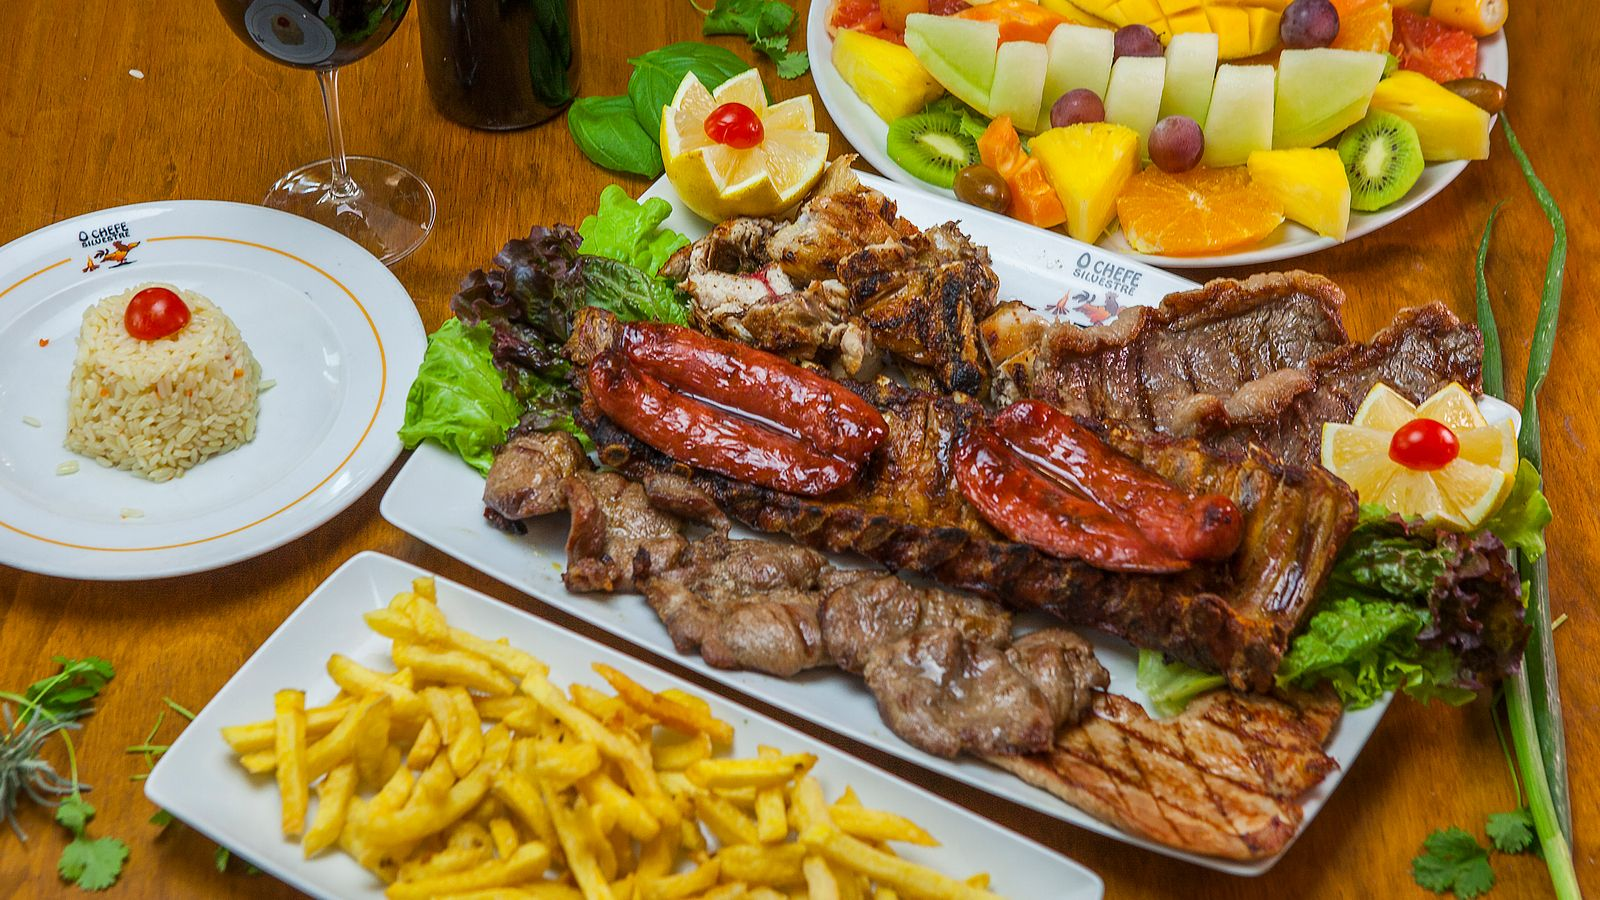 Mixed Meat Grill